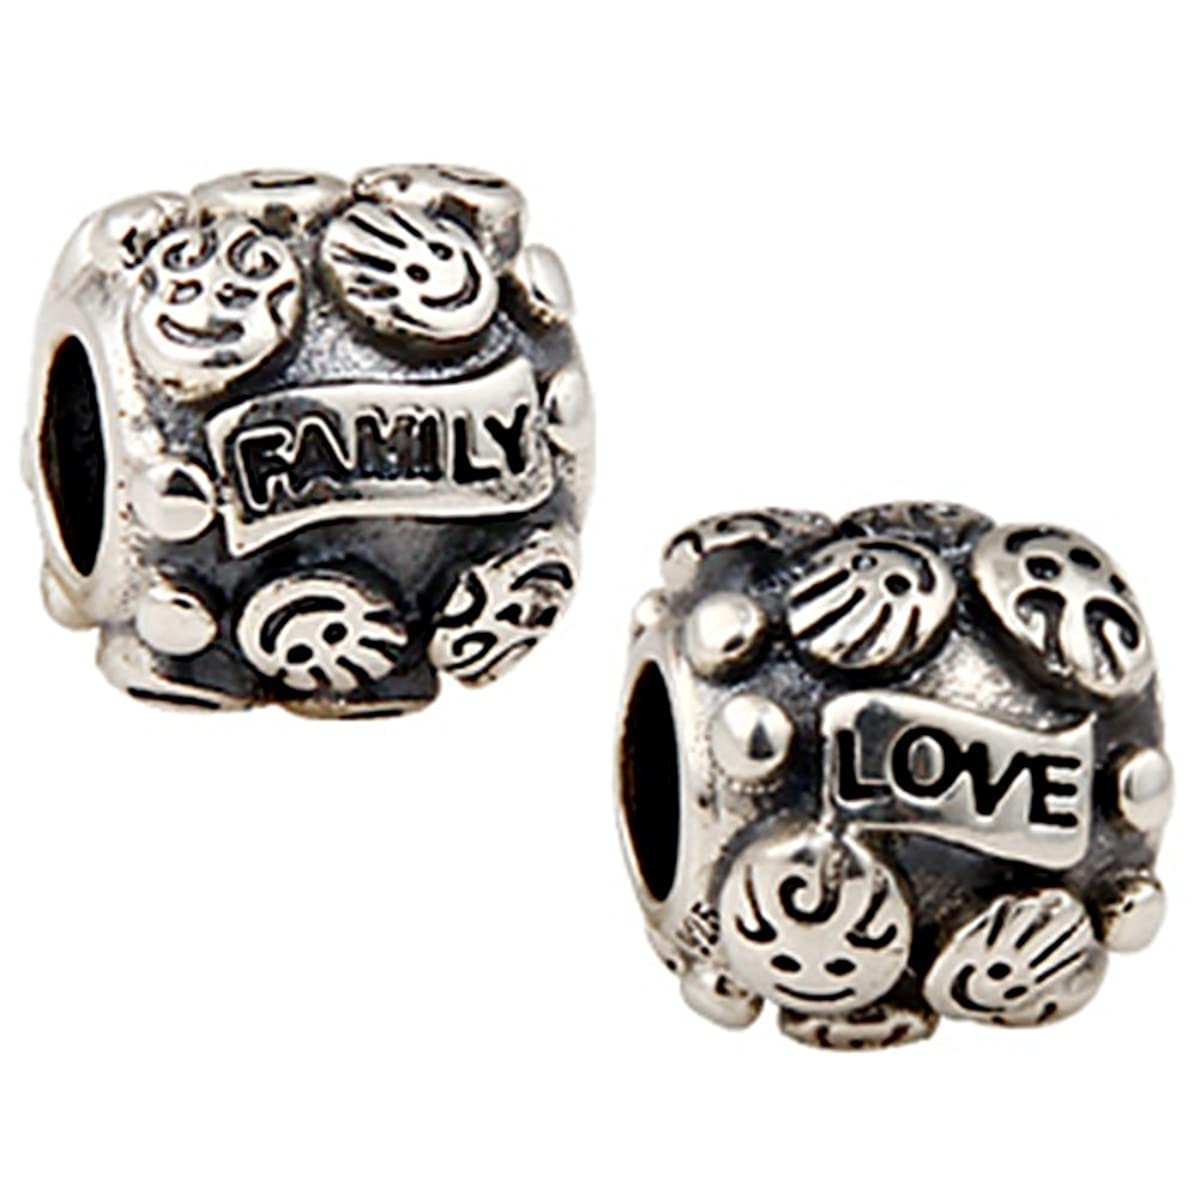 Love Family Charm 925 Sterling Silver Boy Girl Beads fit for DIY Charms Bracelets